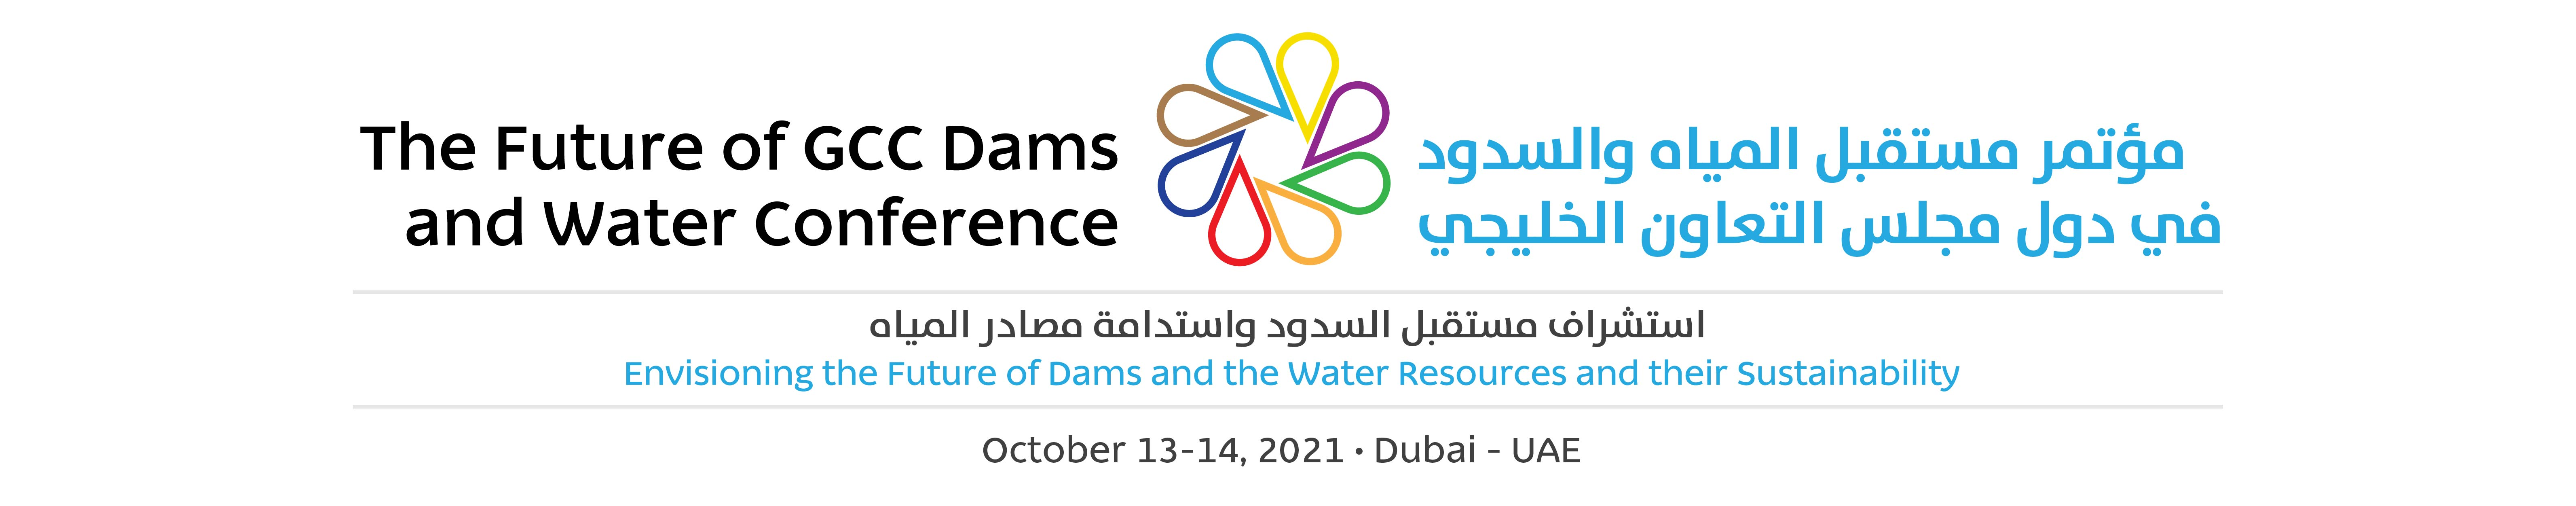 The Future of GCC Dams and Water Conference